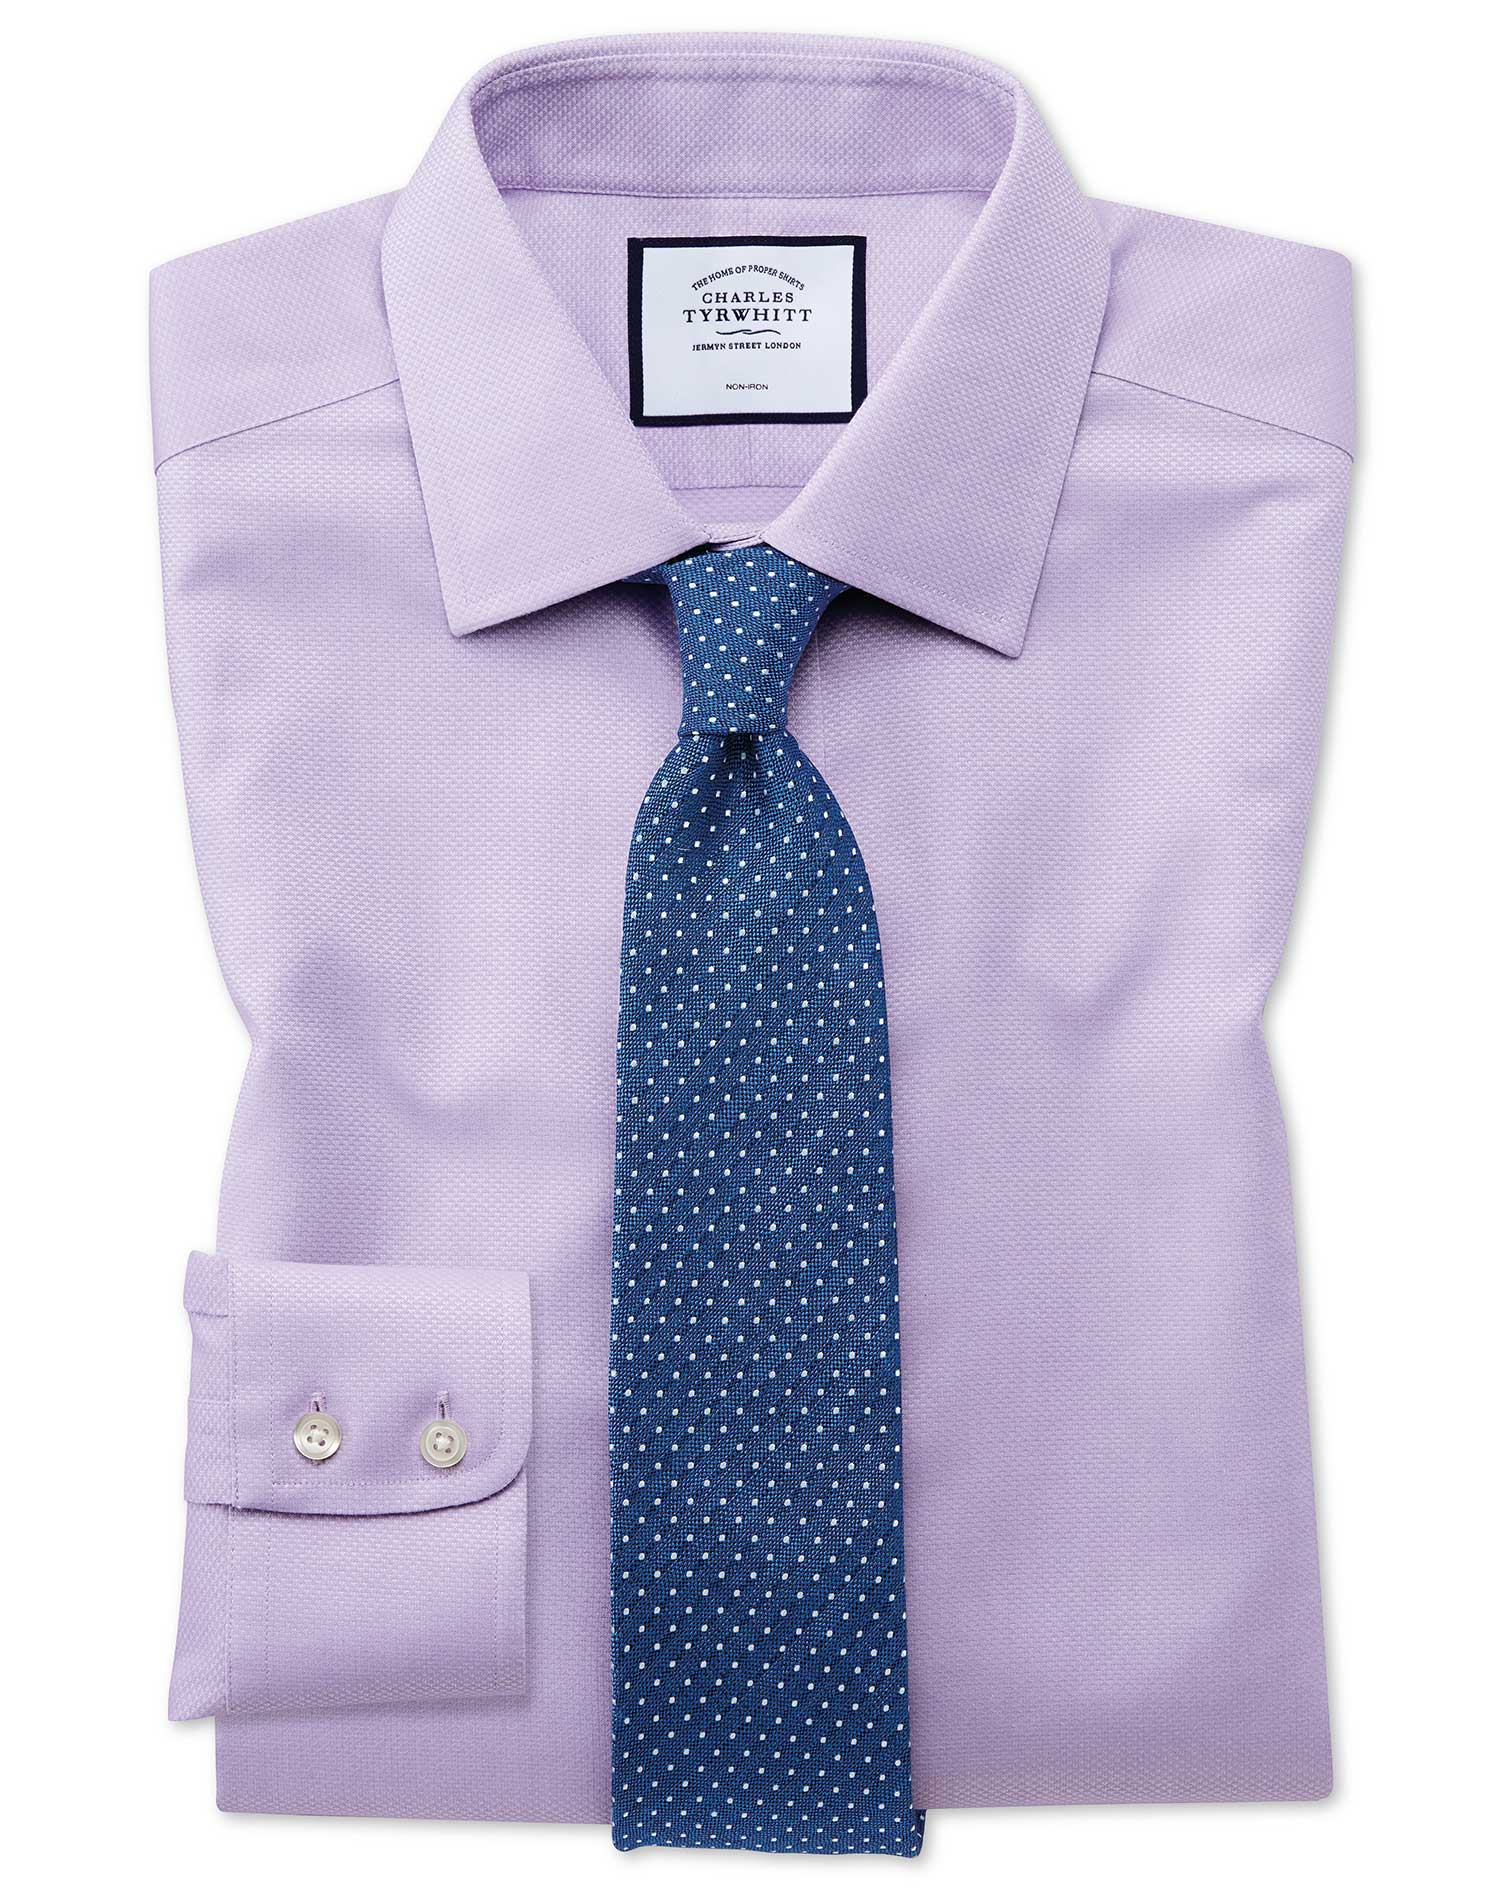 Chemise Lilas Extra Slim Fit Tissage Effet Triangles Sans Repassage - 16 / 33